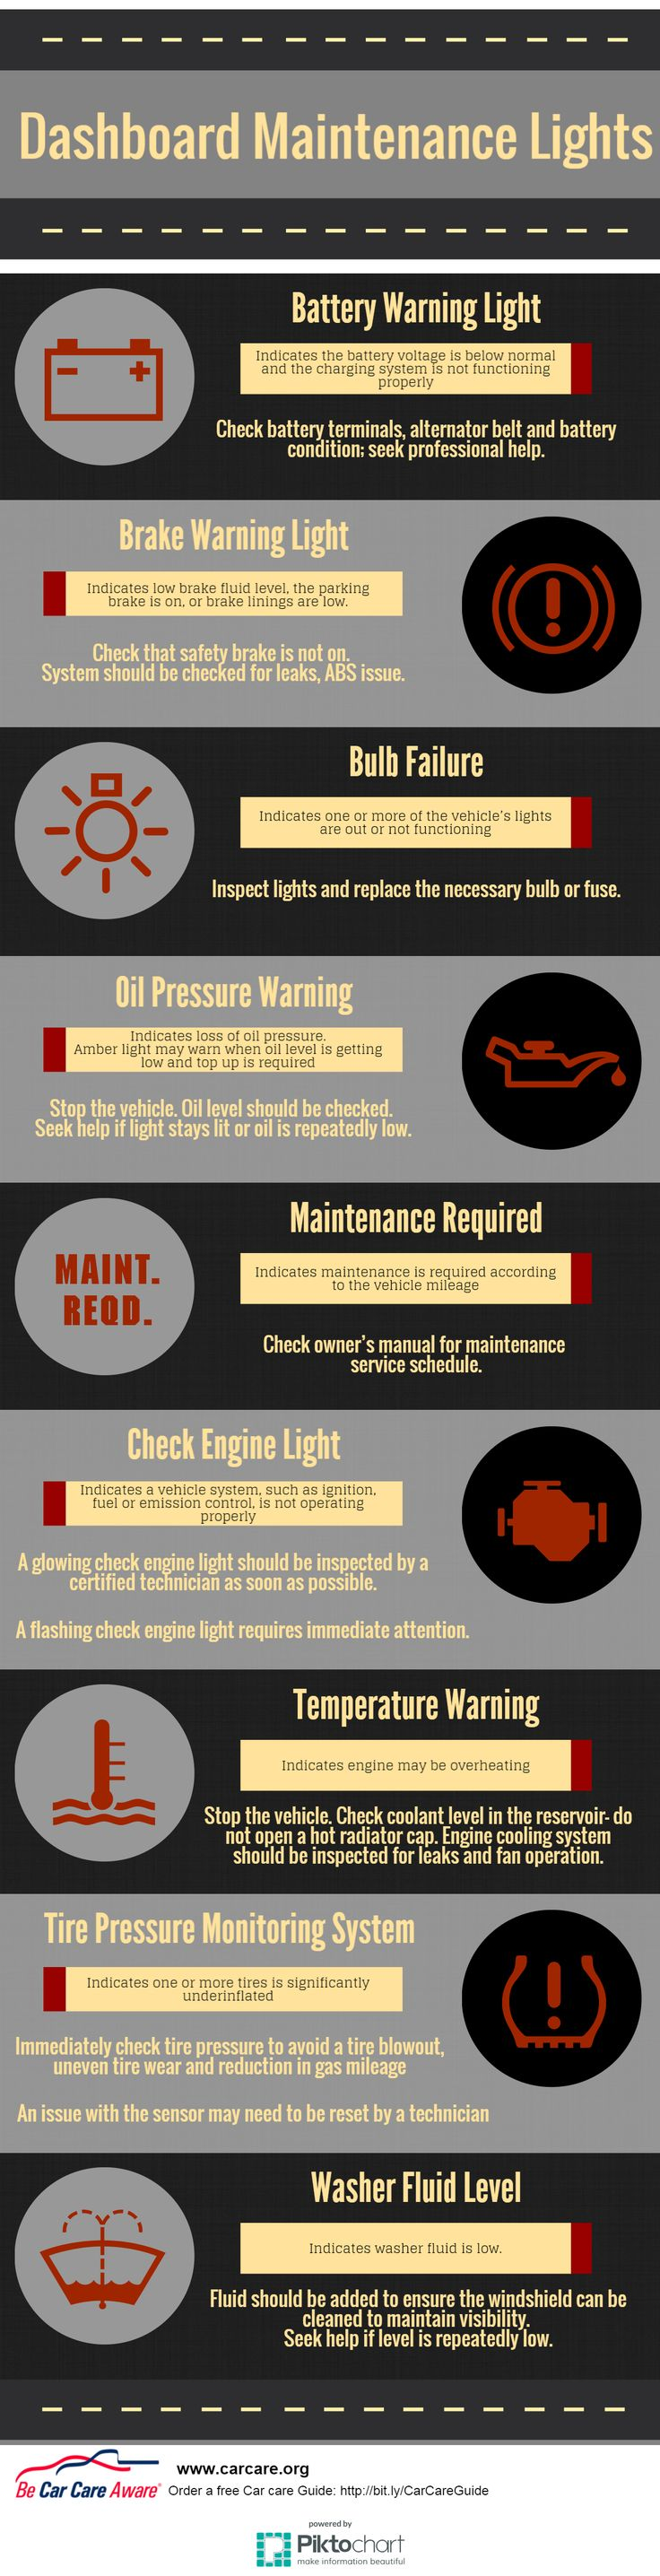 Best Automotive Car Care Tips Images On Pinterest Vehicles - Car sign on dashboarddont panic common dashboard warnings you need to know part